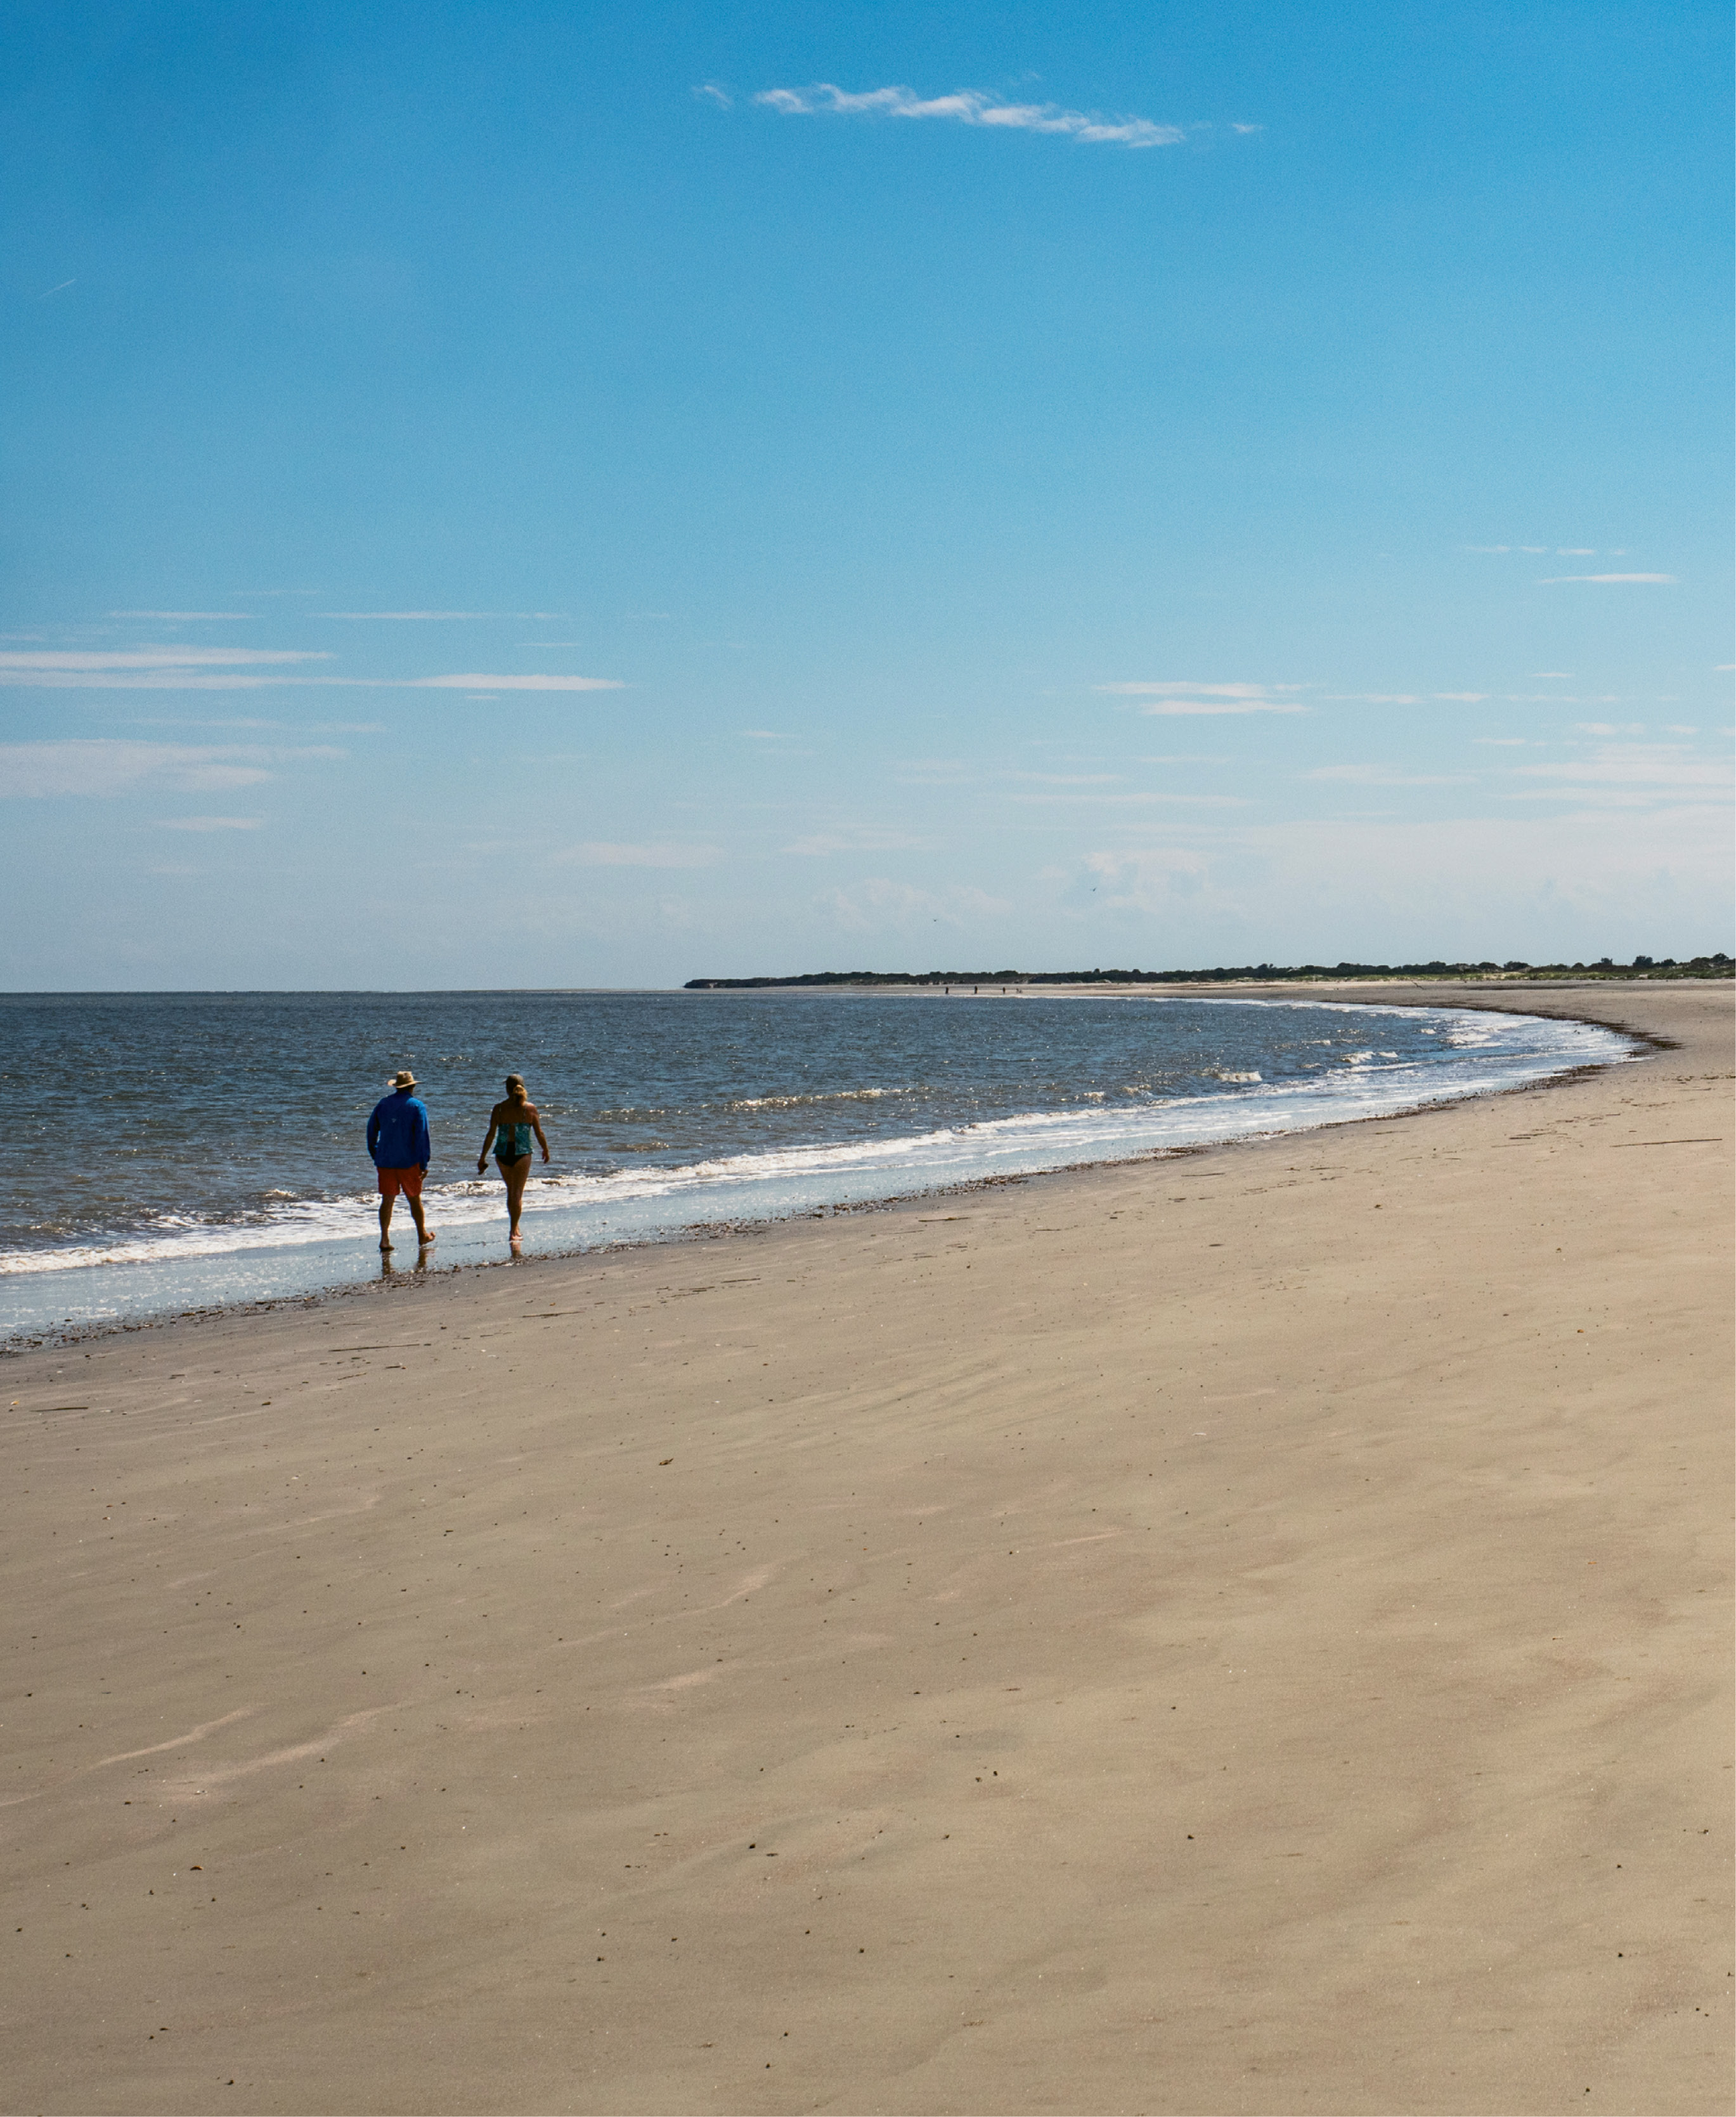 Natural wonders: The island boasts seven miles of beachfront and less than 20 developed acres centered around the original lodge.